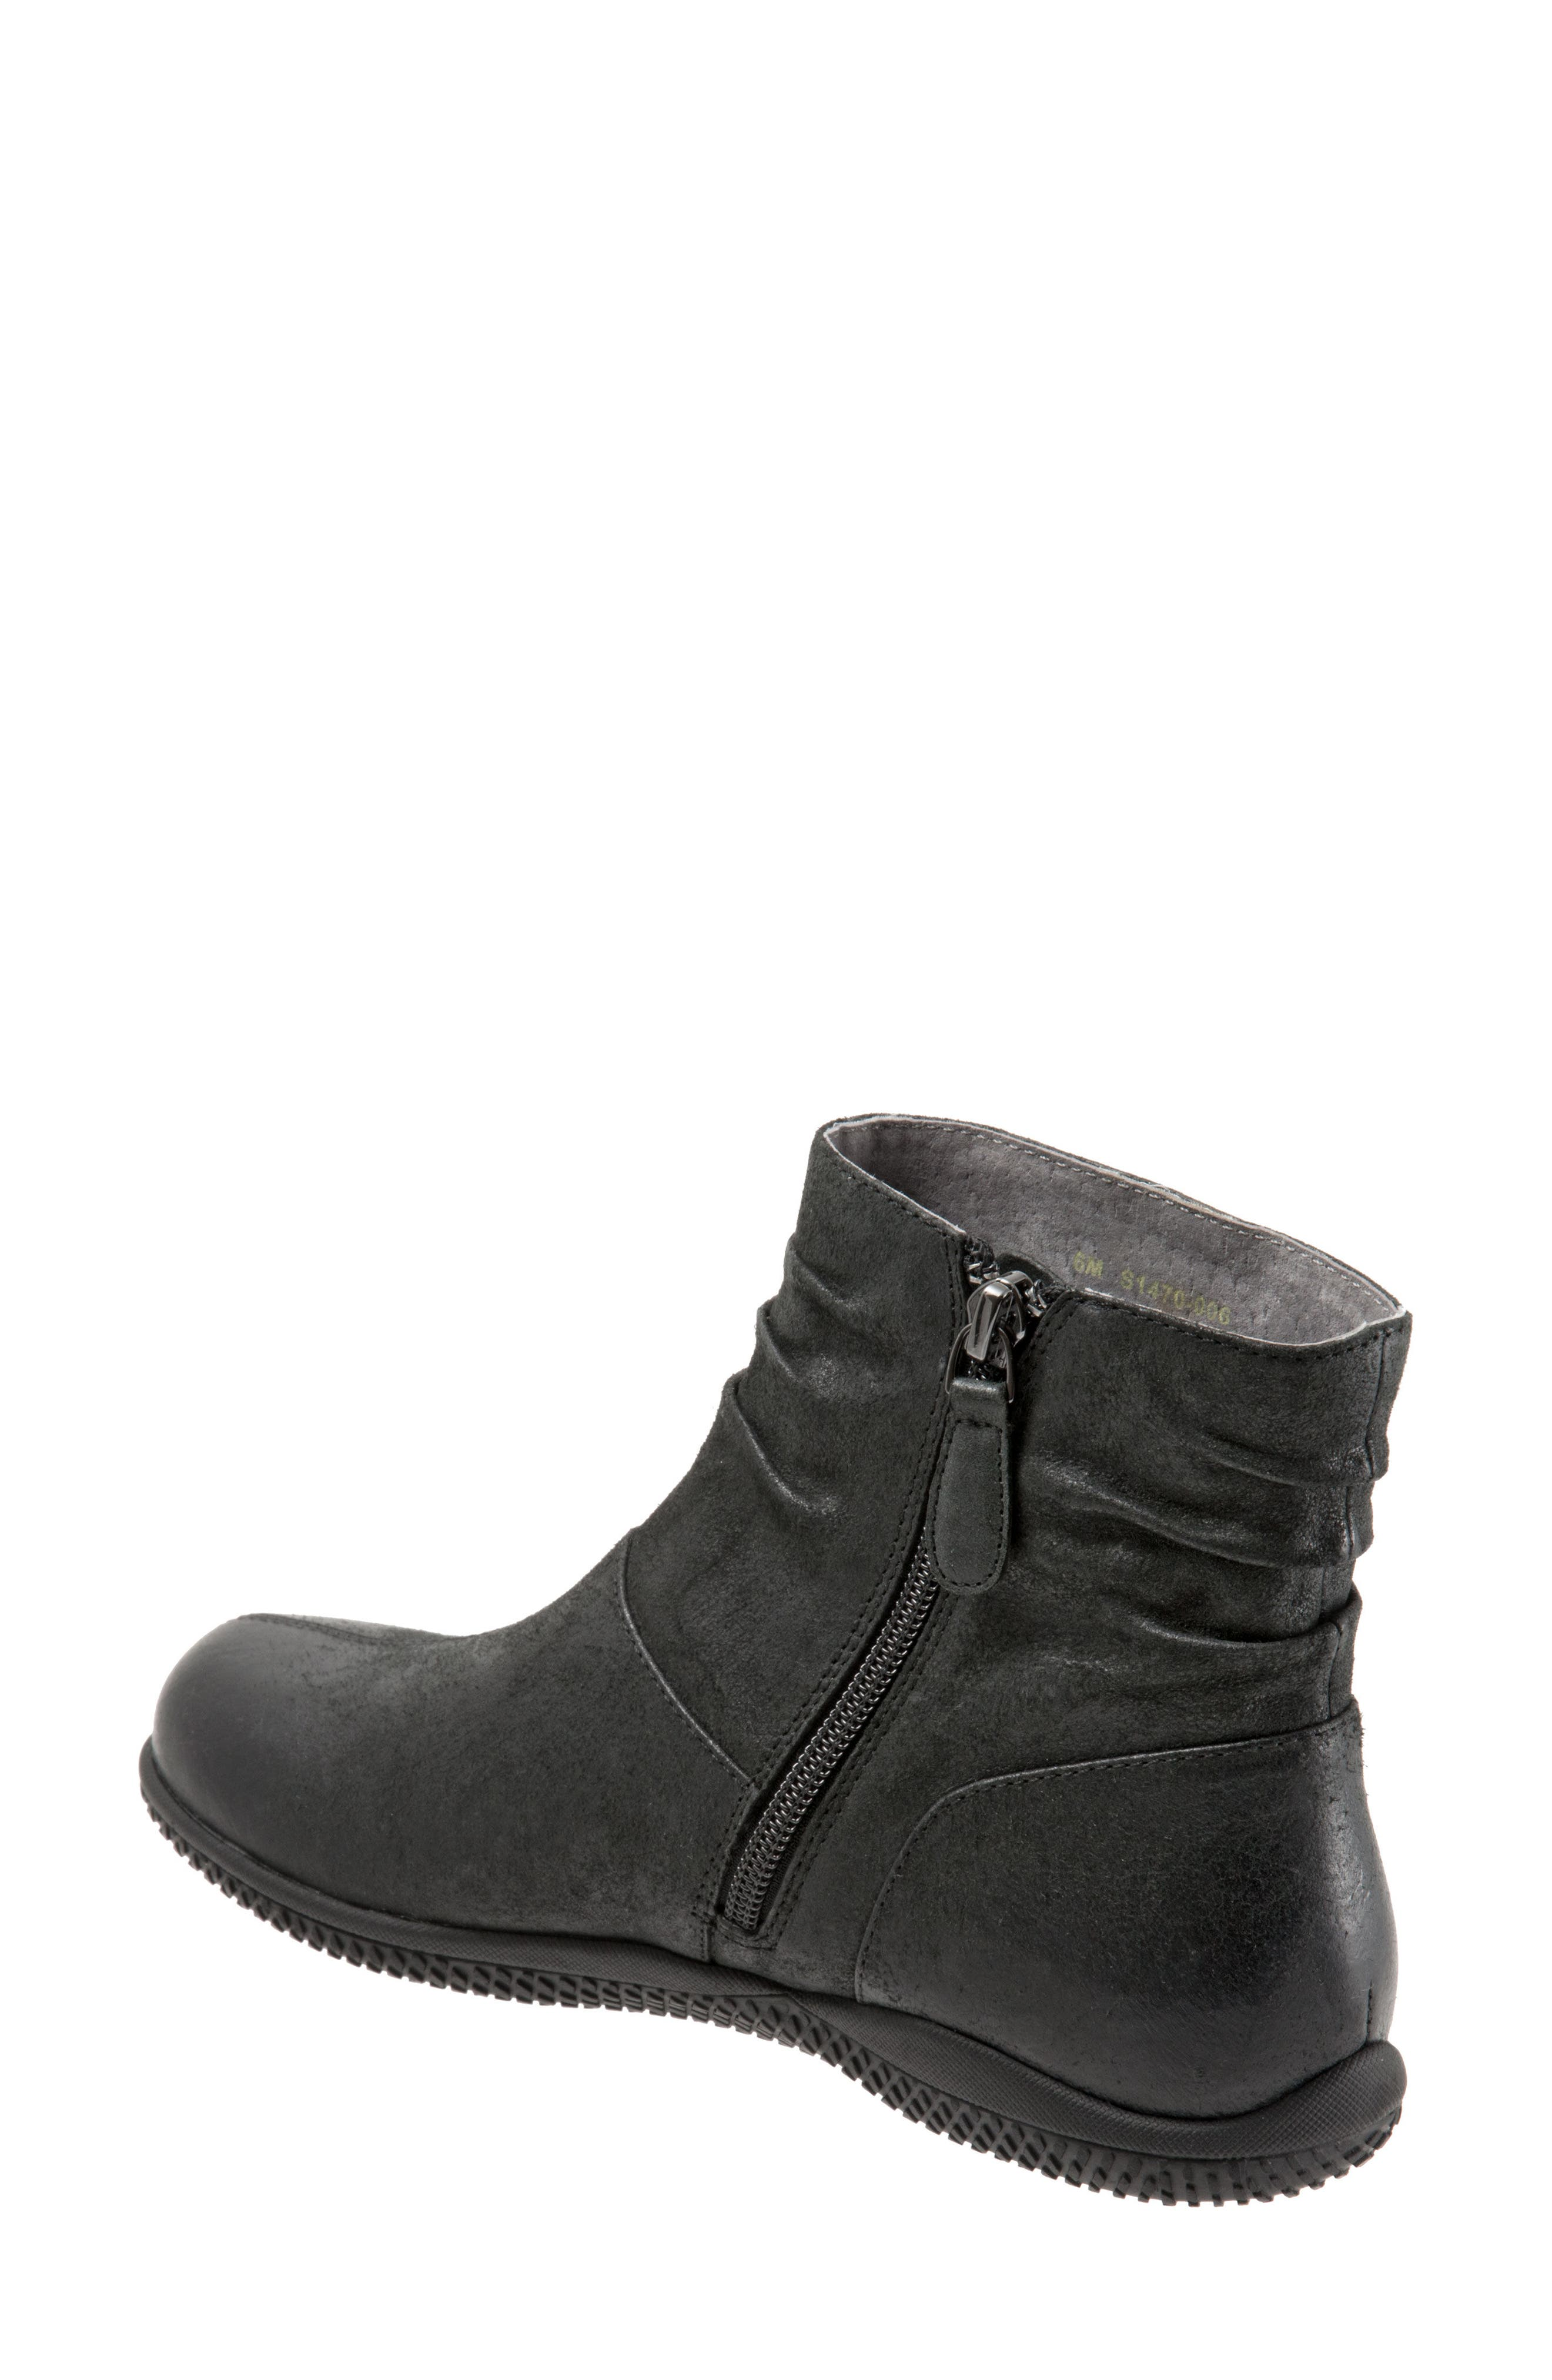 'Hanover' Leather Boot,                             Alternate thumbnail 2, color,                             006